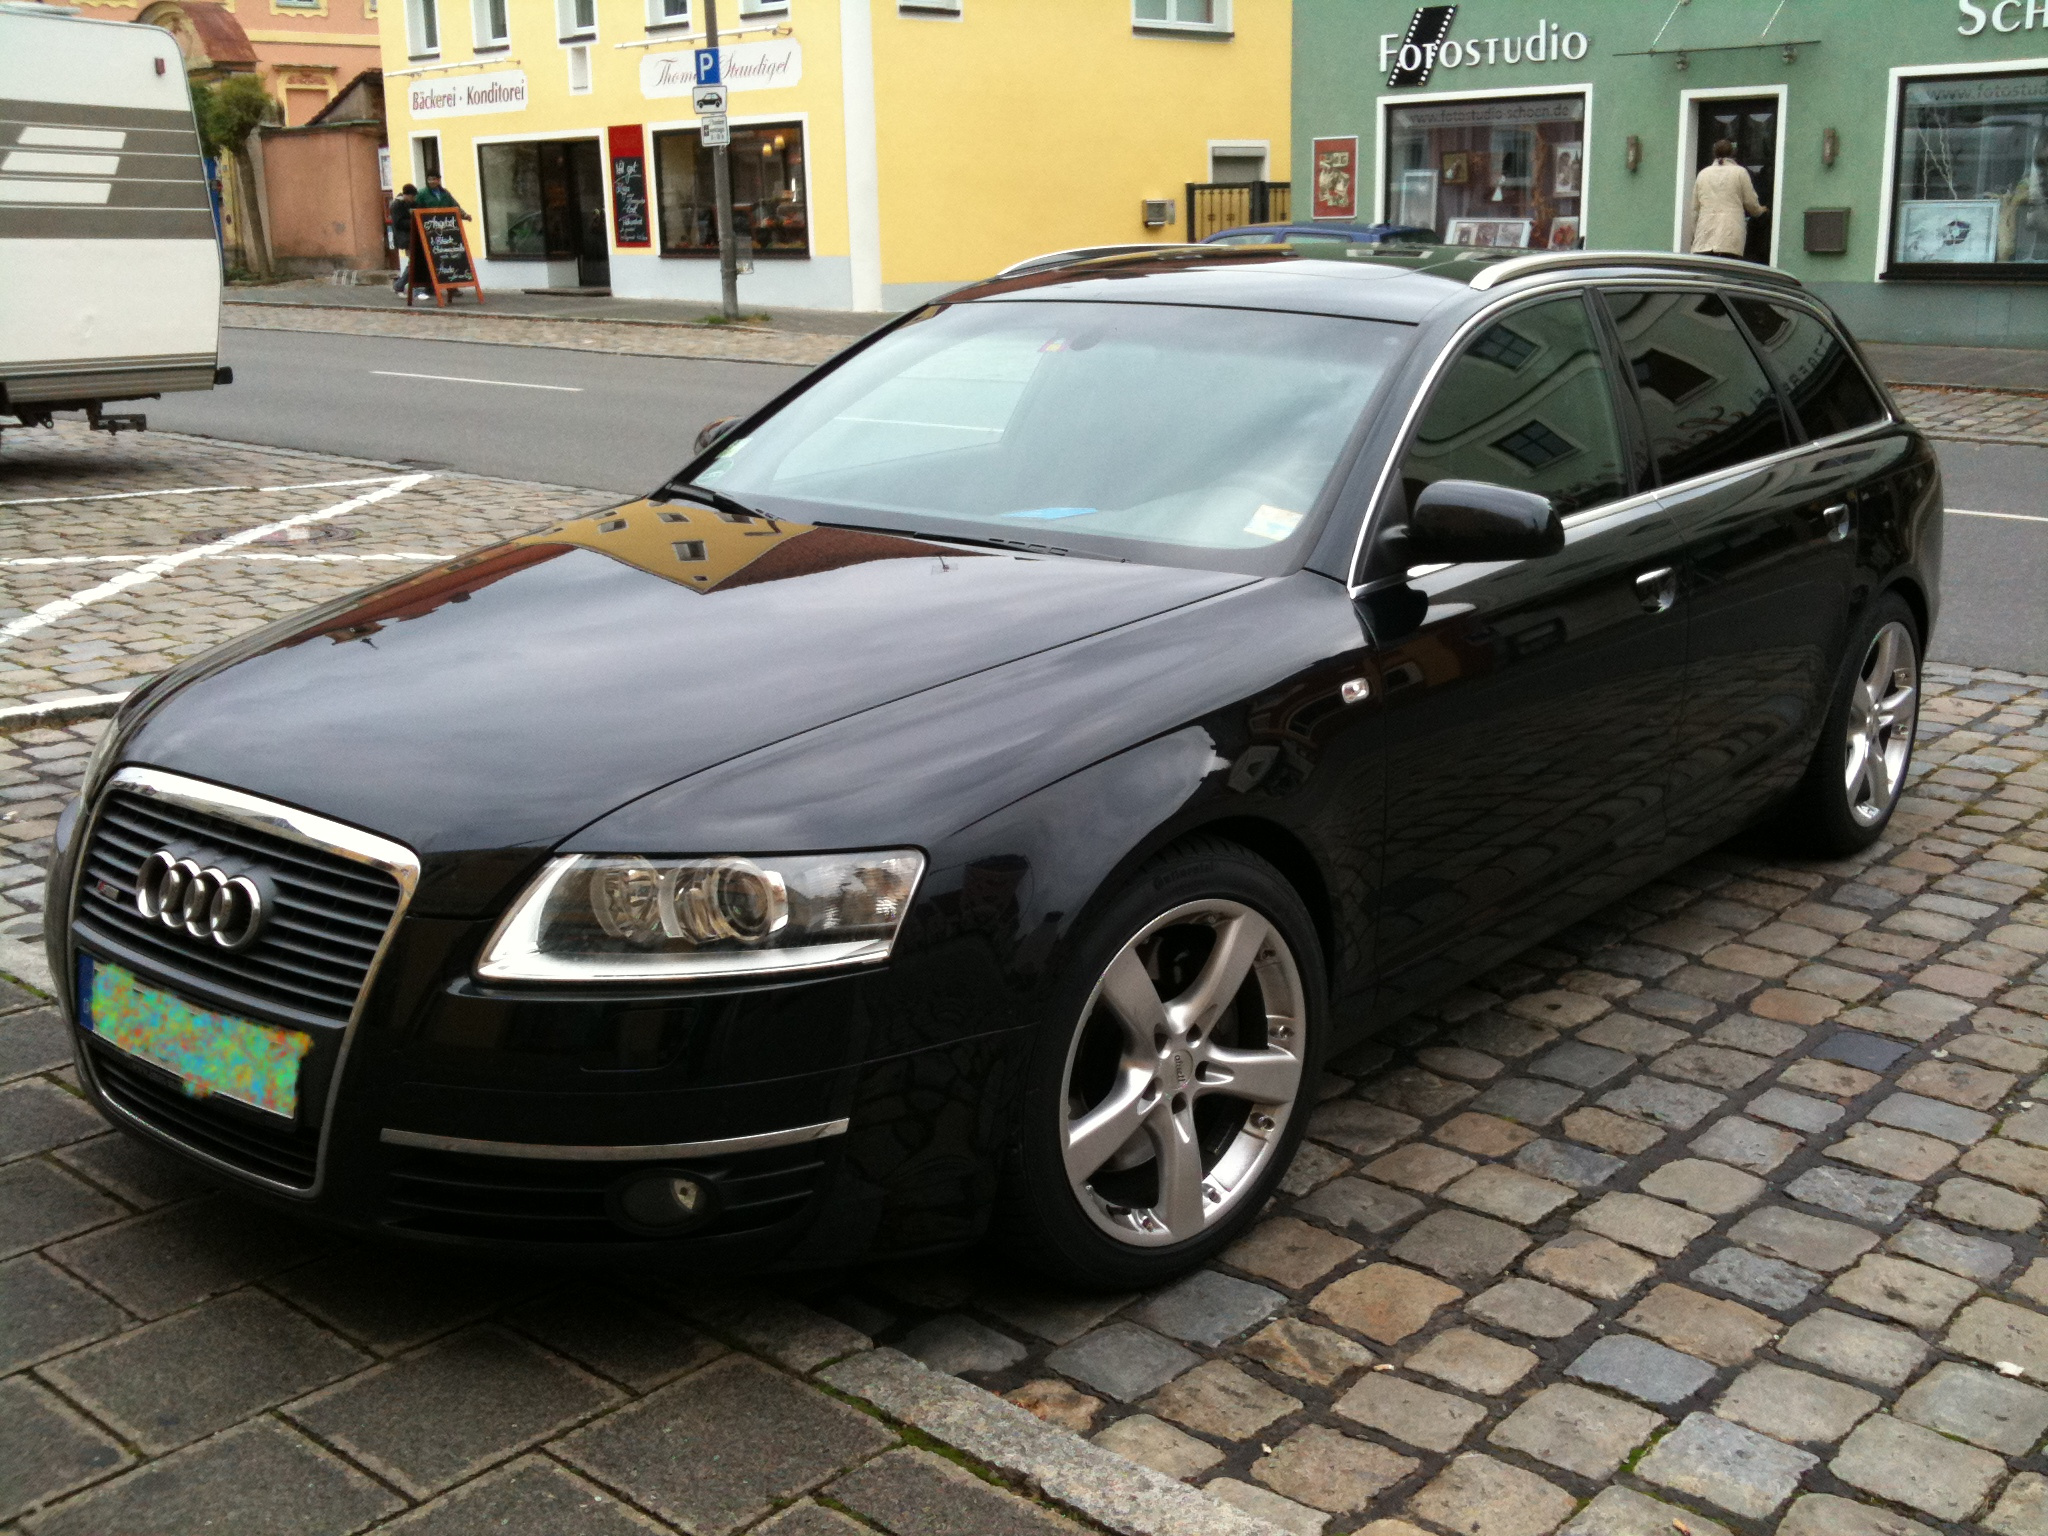 2007 Audi A6 avant (4f,c6) - pictures, information and ...